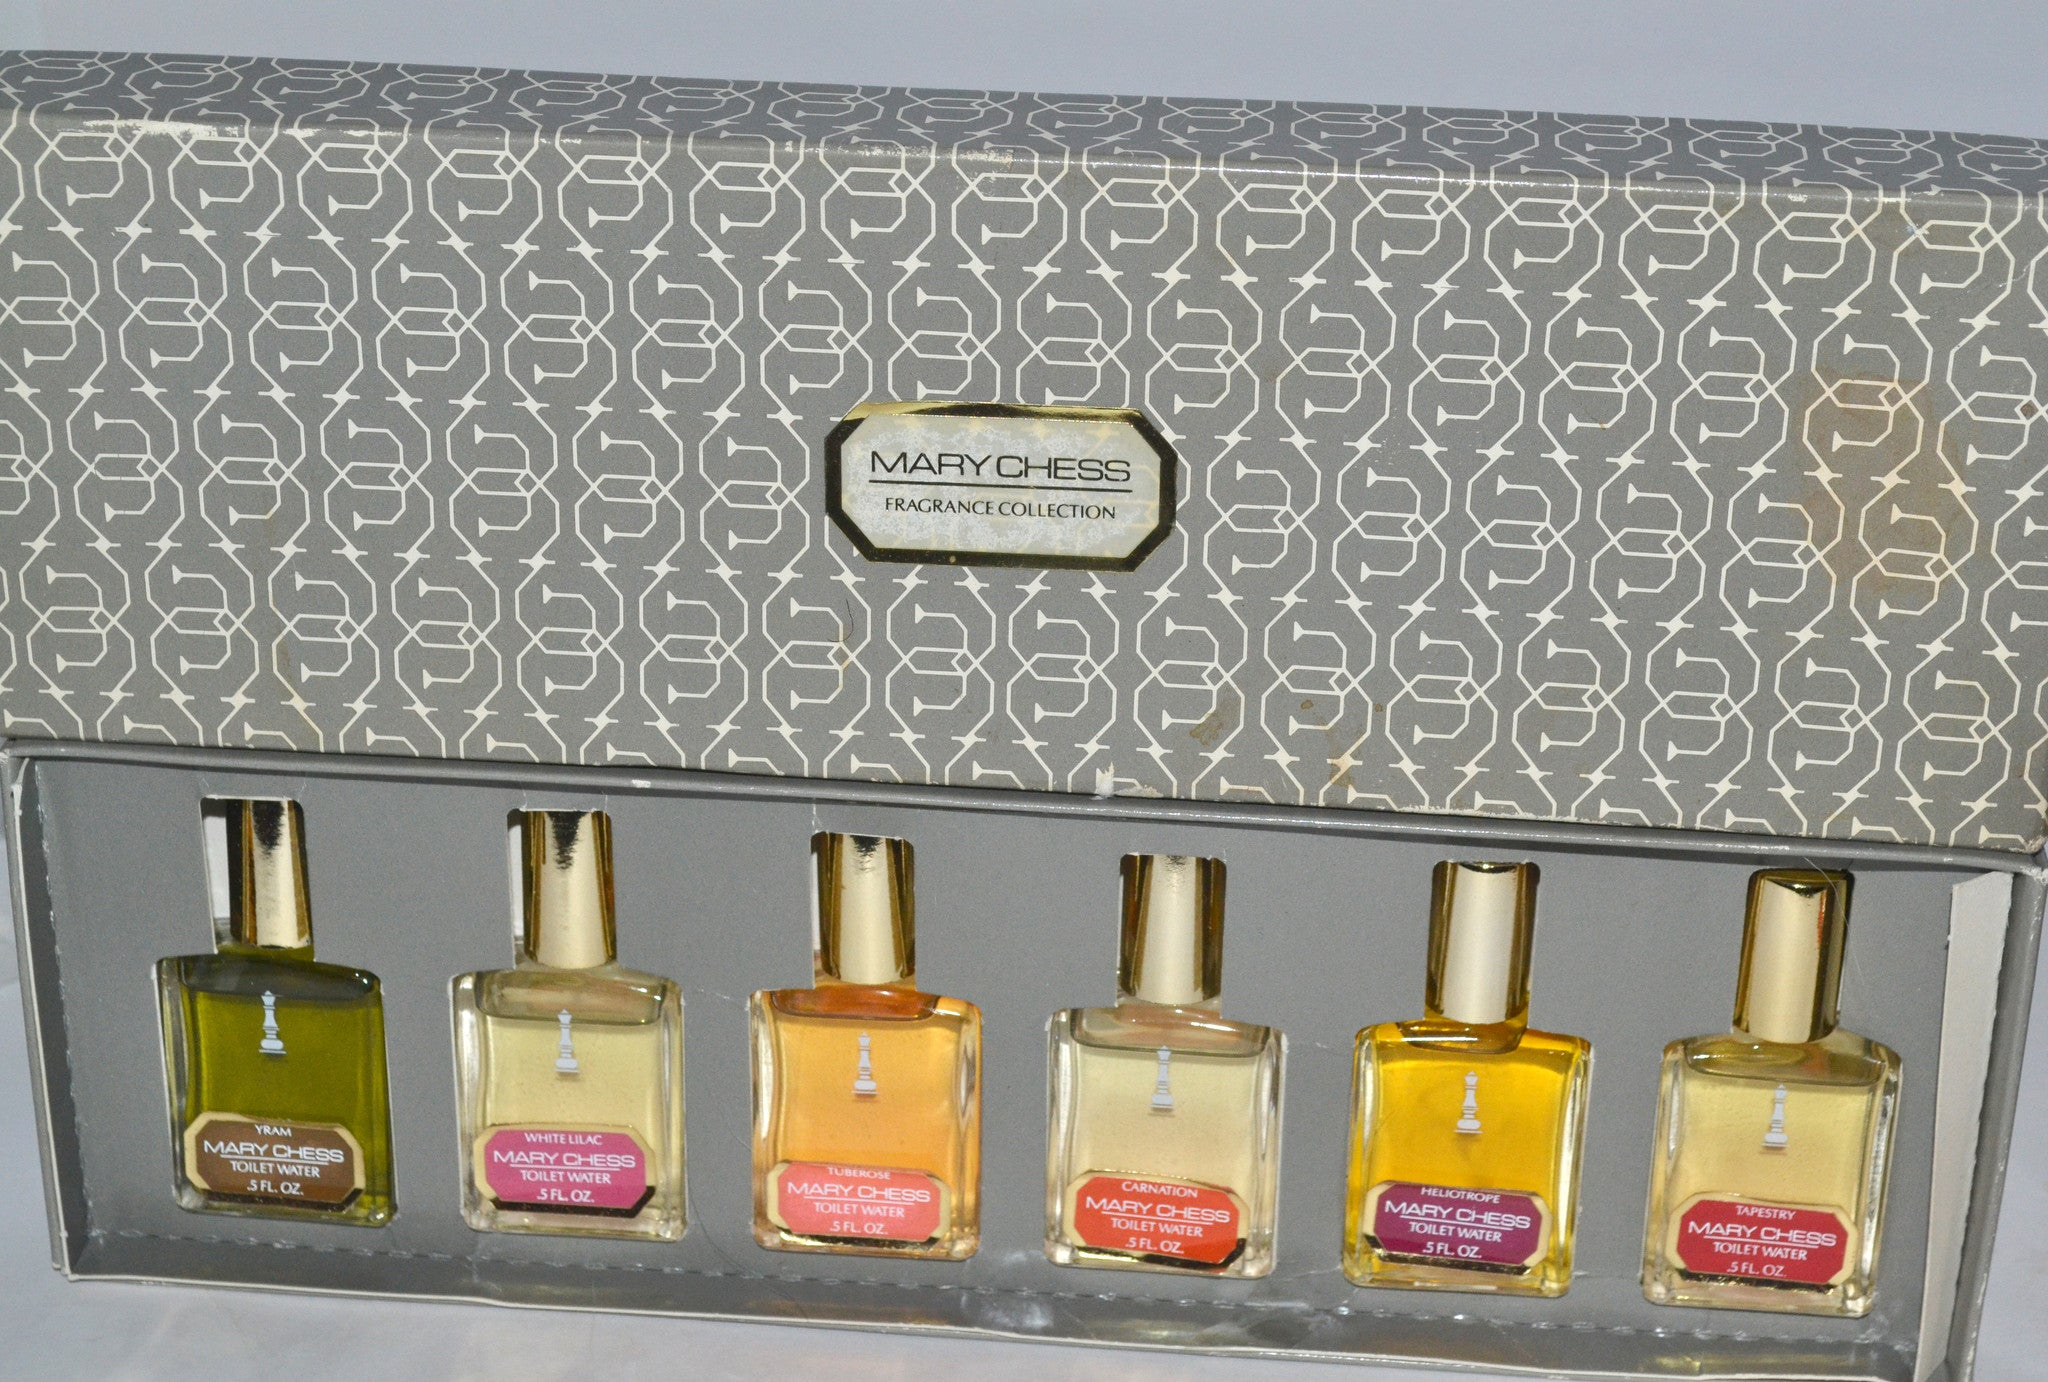 Mary Chess Fragrance Collection